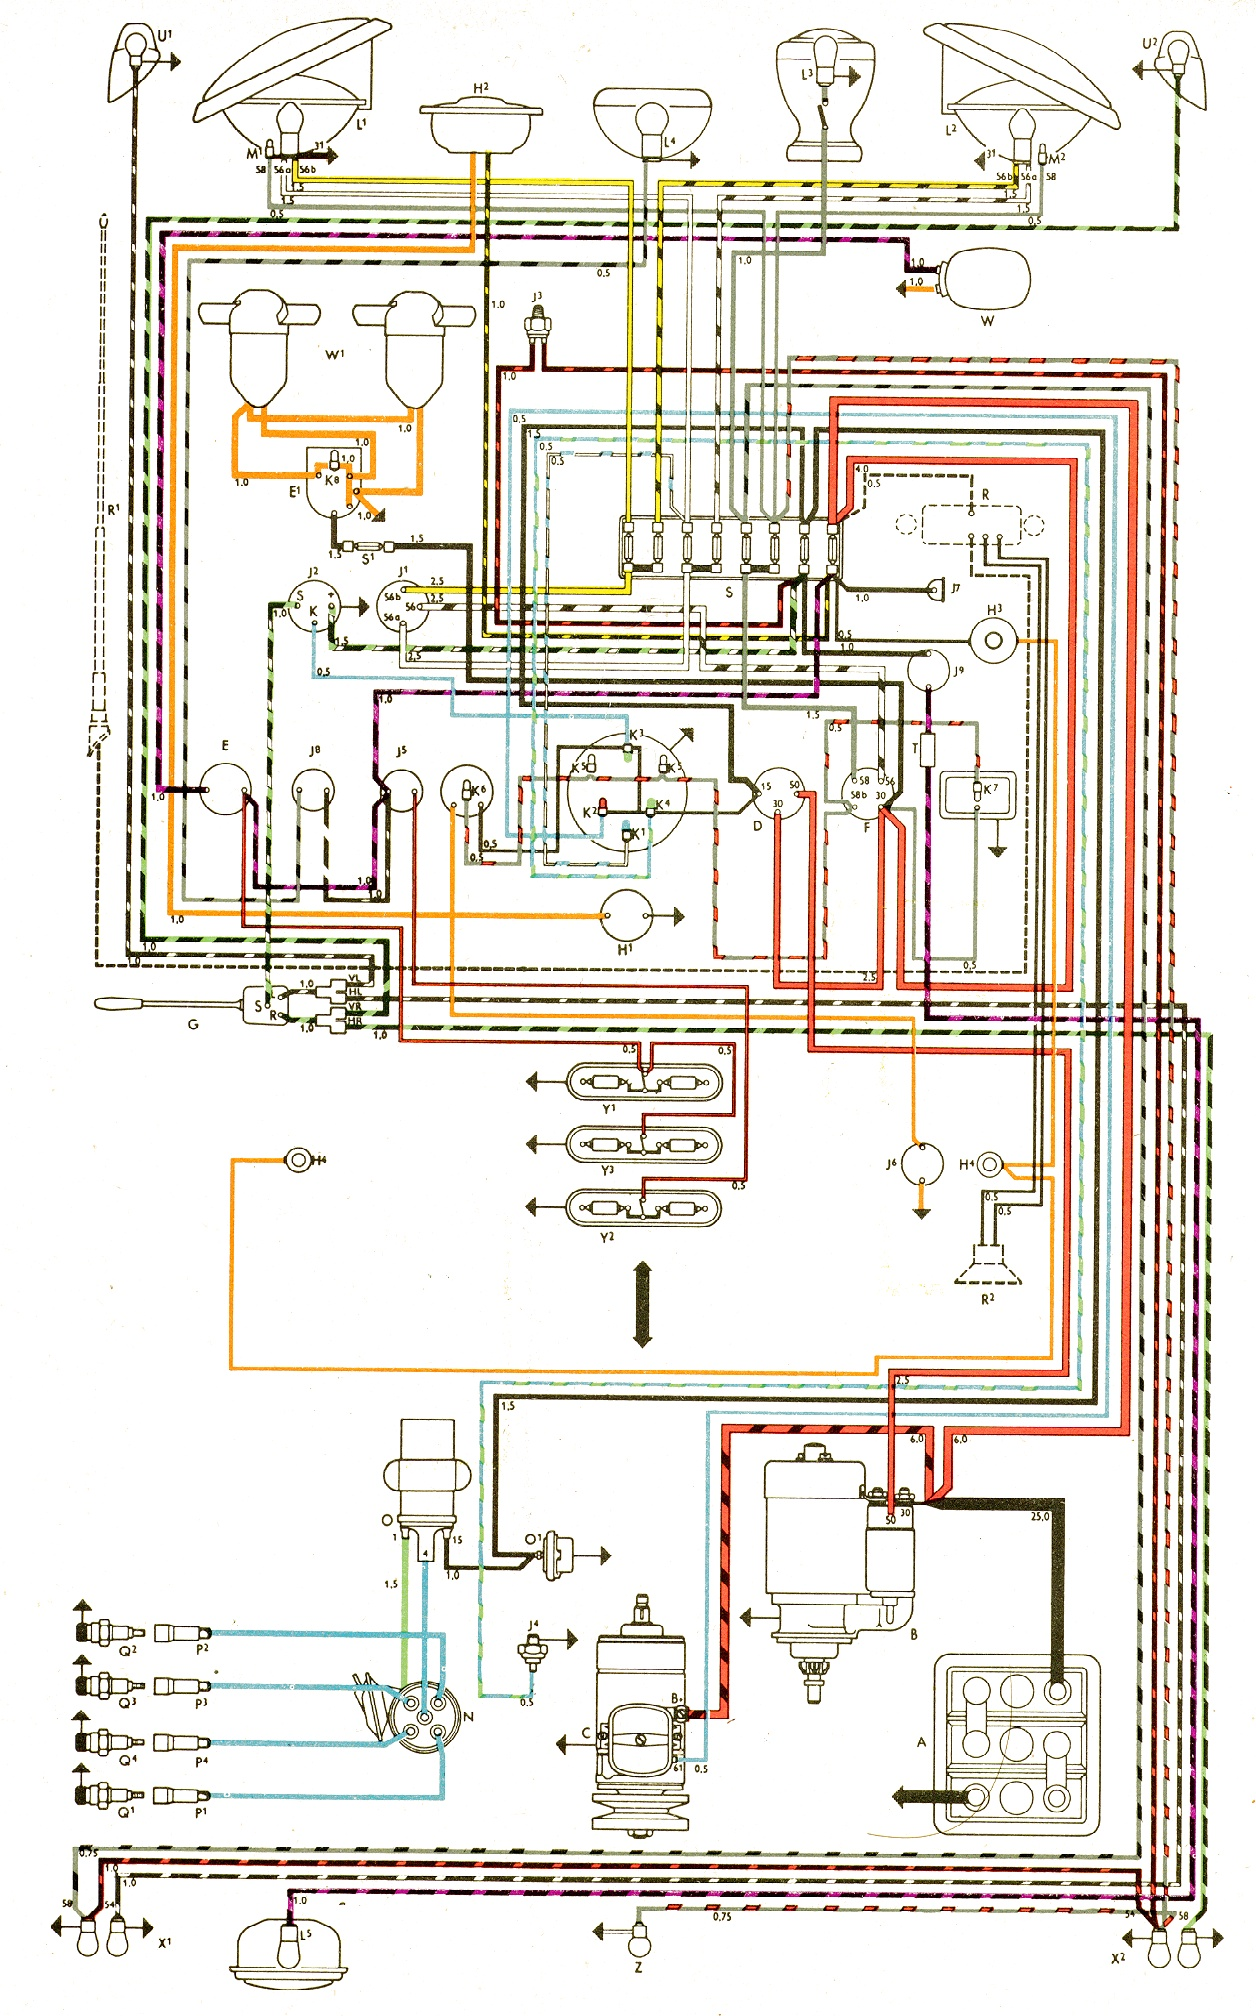 bus 62 bus wiring diagram vw wiring harness diagram \u2022 wiring diagrams j 1957 vw bug wiring diagram at soozxer.org